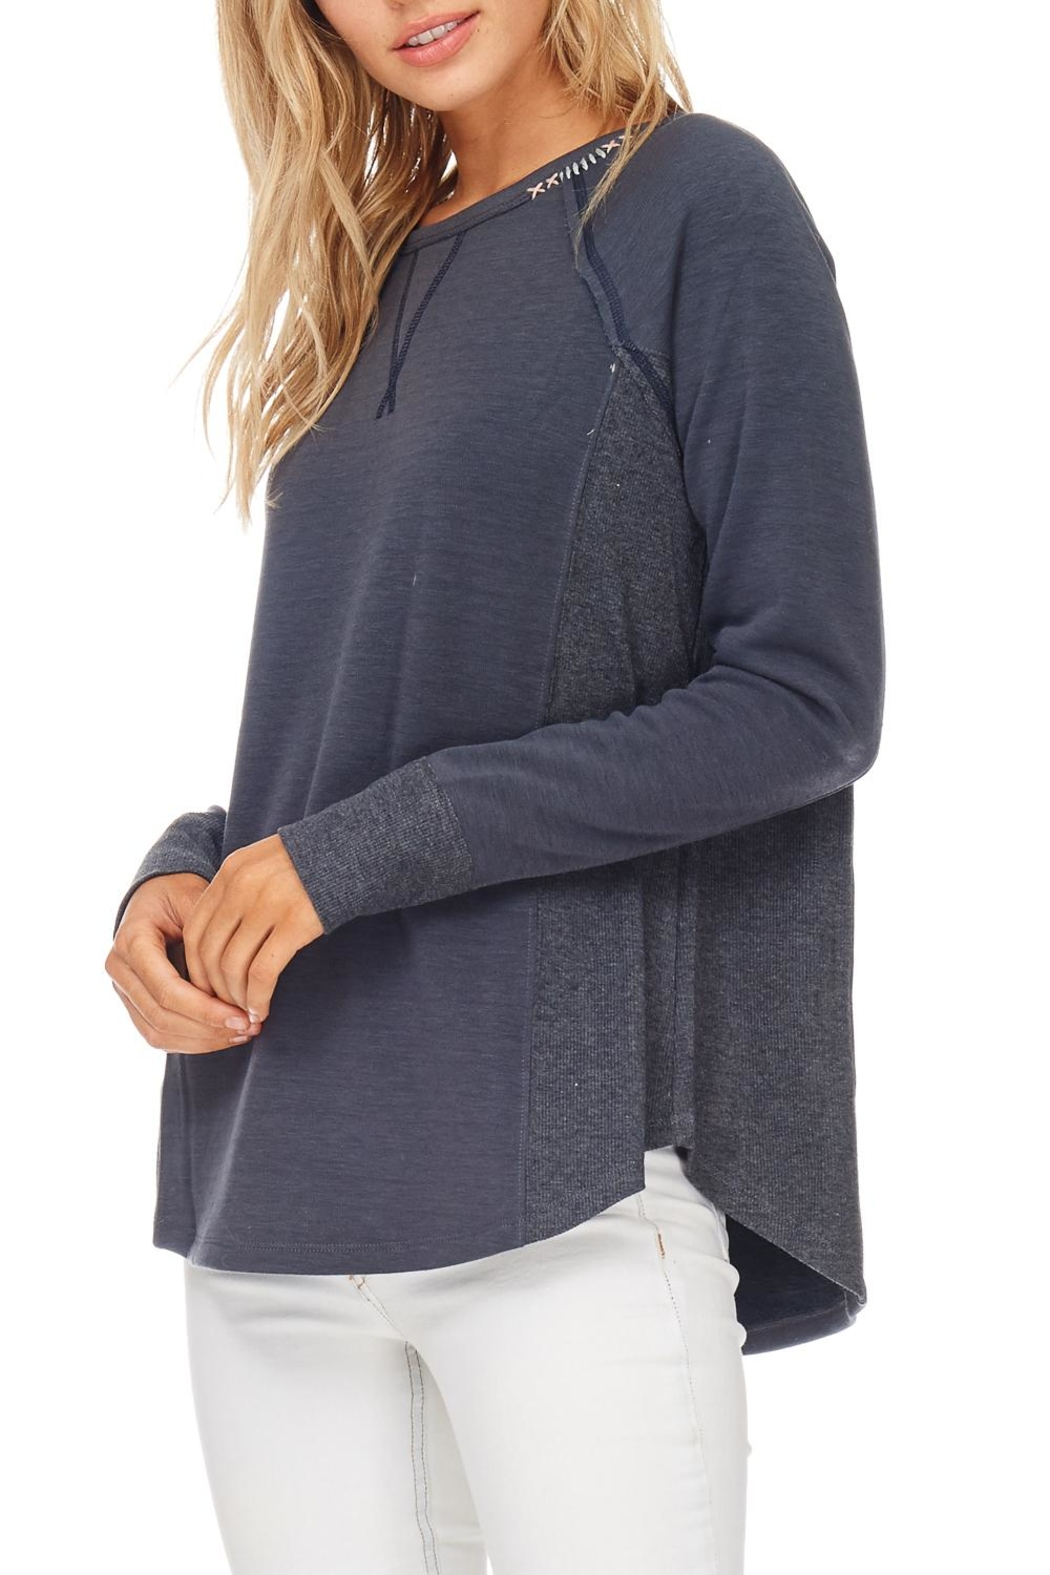 Hem & Thread Navy Stitched Pullover Top - Main Image